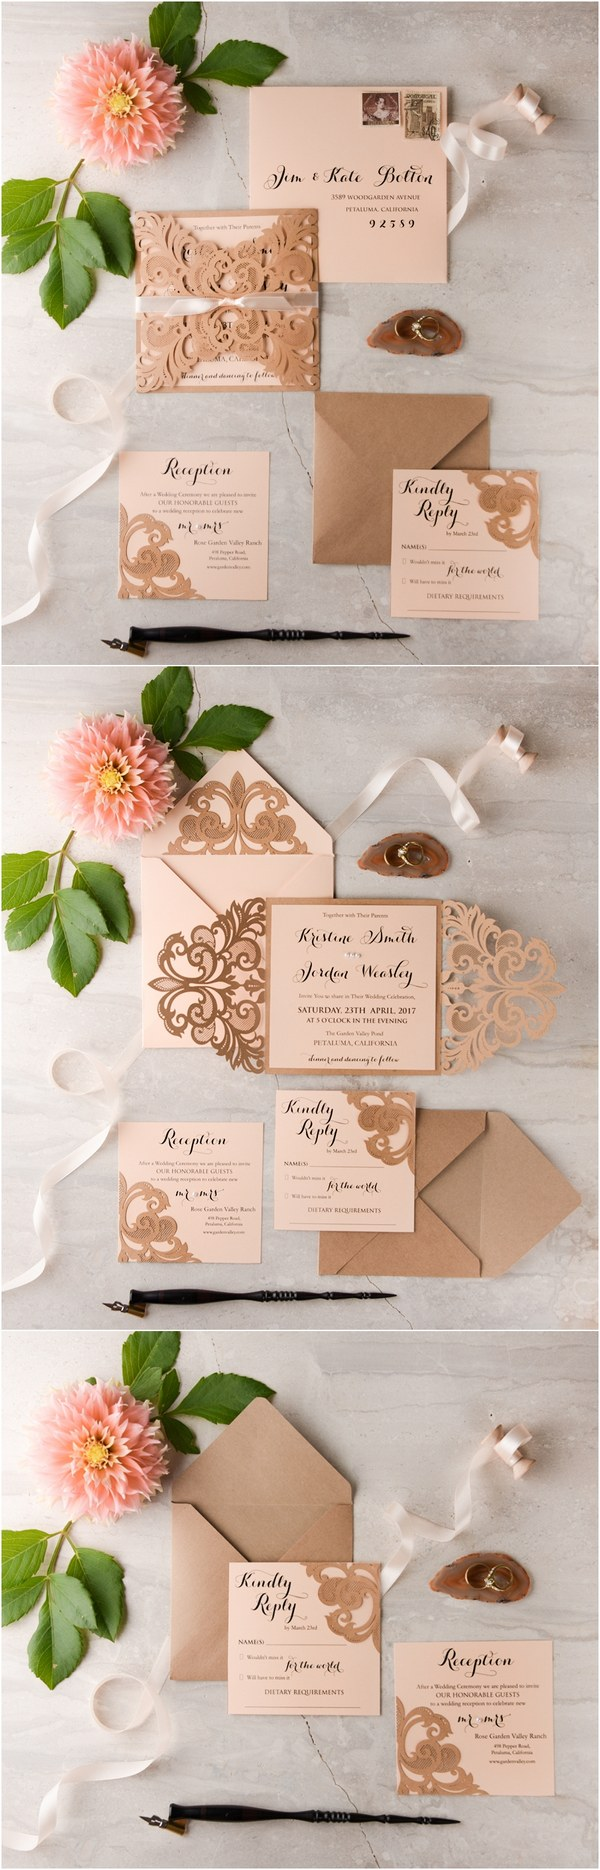 Peach Laser cut vintage wedding invitatons 01lCNz